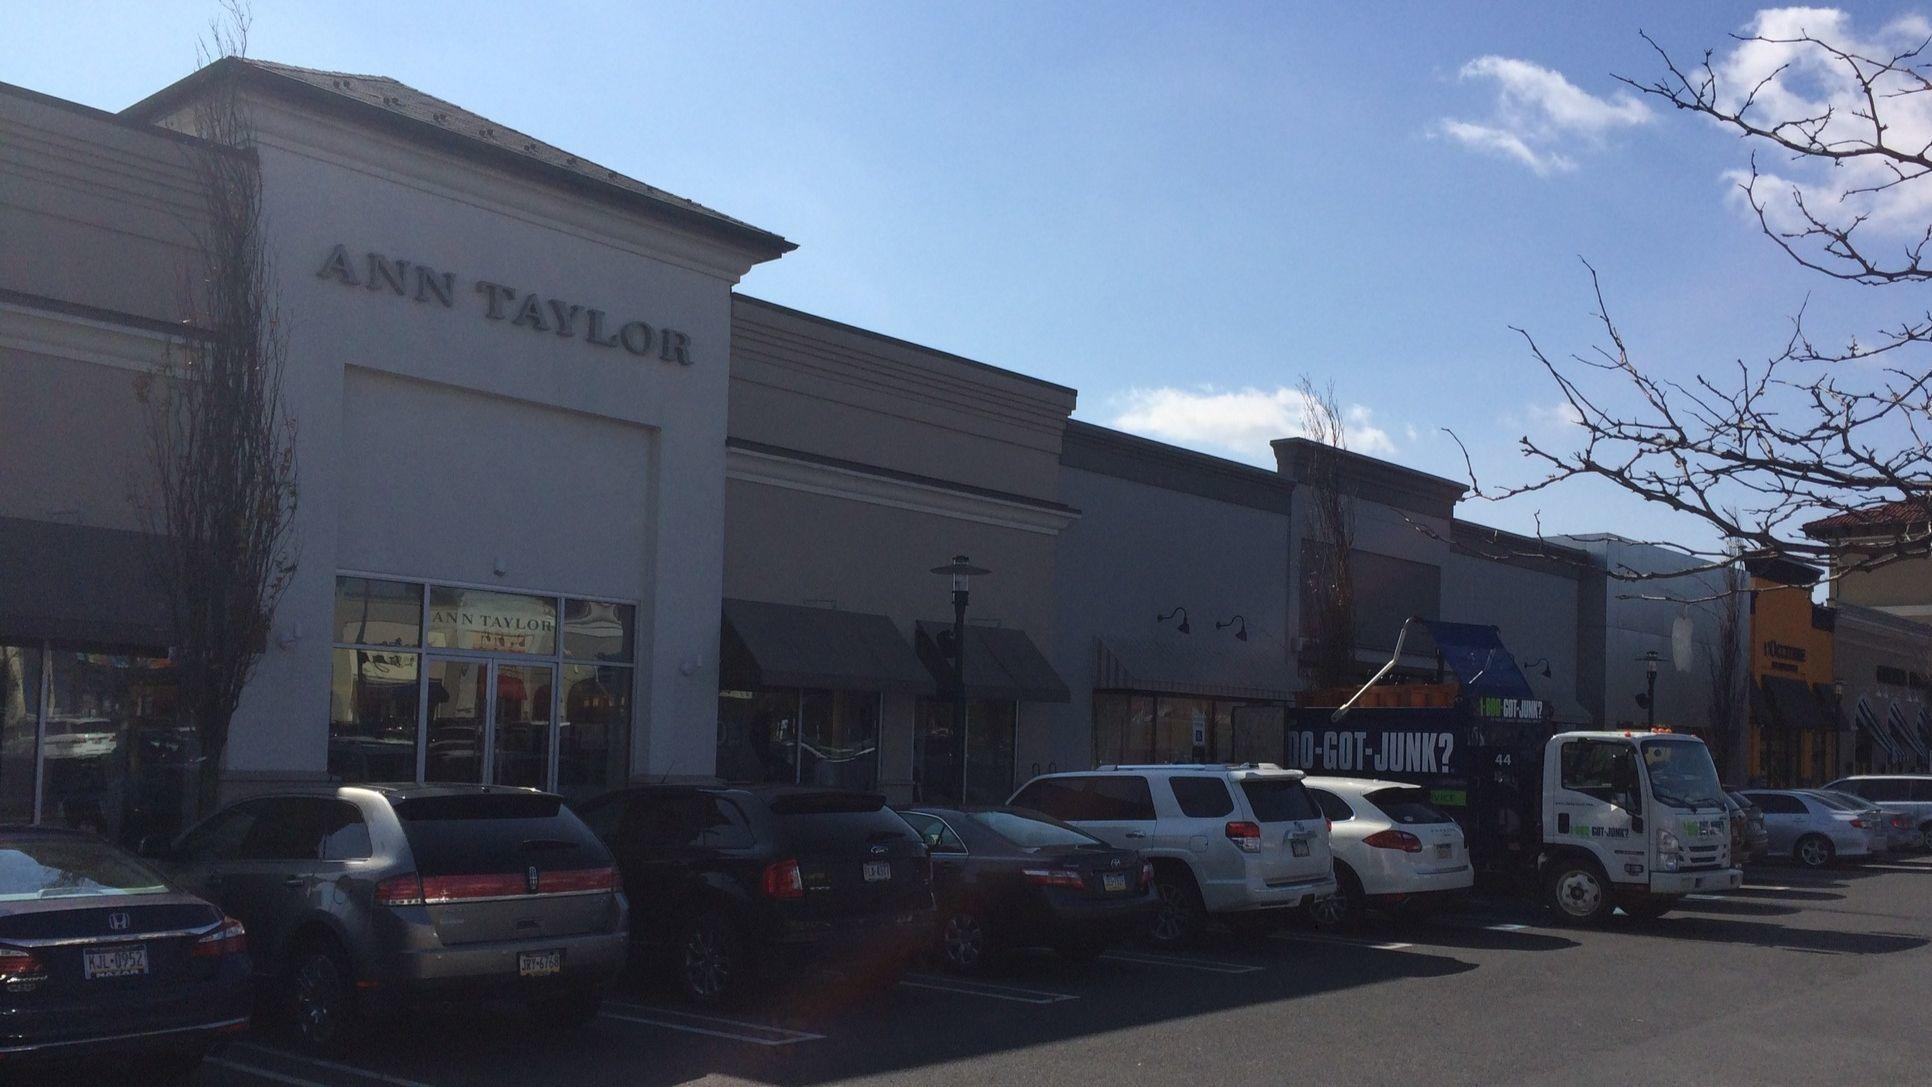 Lehigh Valley Mall is a super-regional, two-level, enclosed shopping mall with attached outdoor Lifestyle Center located in Whitehall, PA at the intersection of Rt and Rt Lehigh Valley Mall is the dominant regional shopping mall serving Allentown, Bethlehem and Easton with shops ranging from women's fashion to specialty retail to children's apparel.